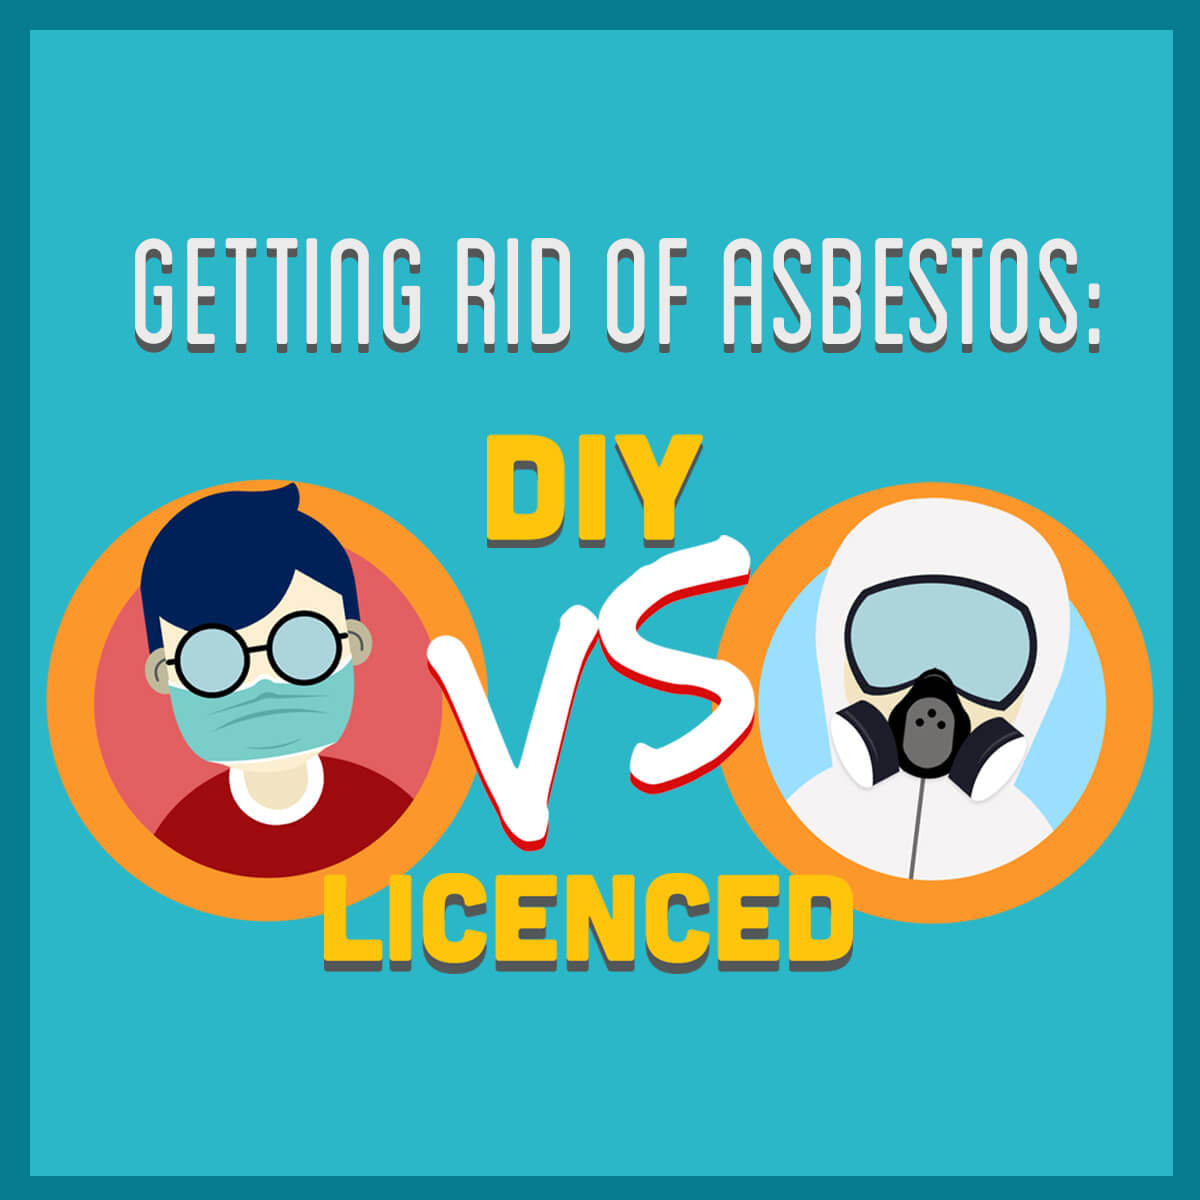 getting-rid-of-asbestos-diy-vs-licenced-infographic-plaza-thumb